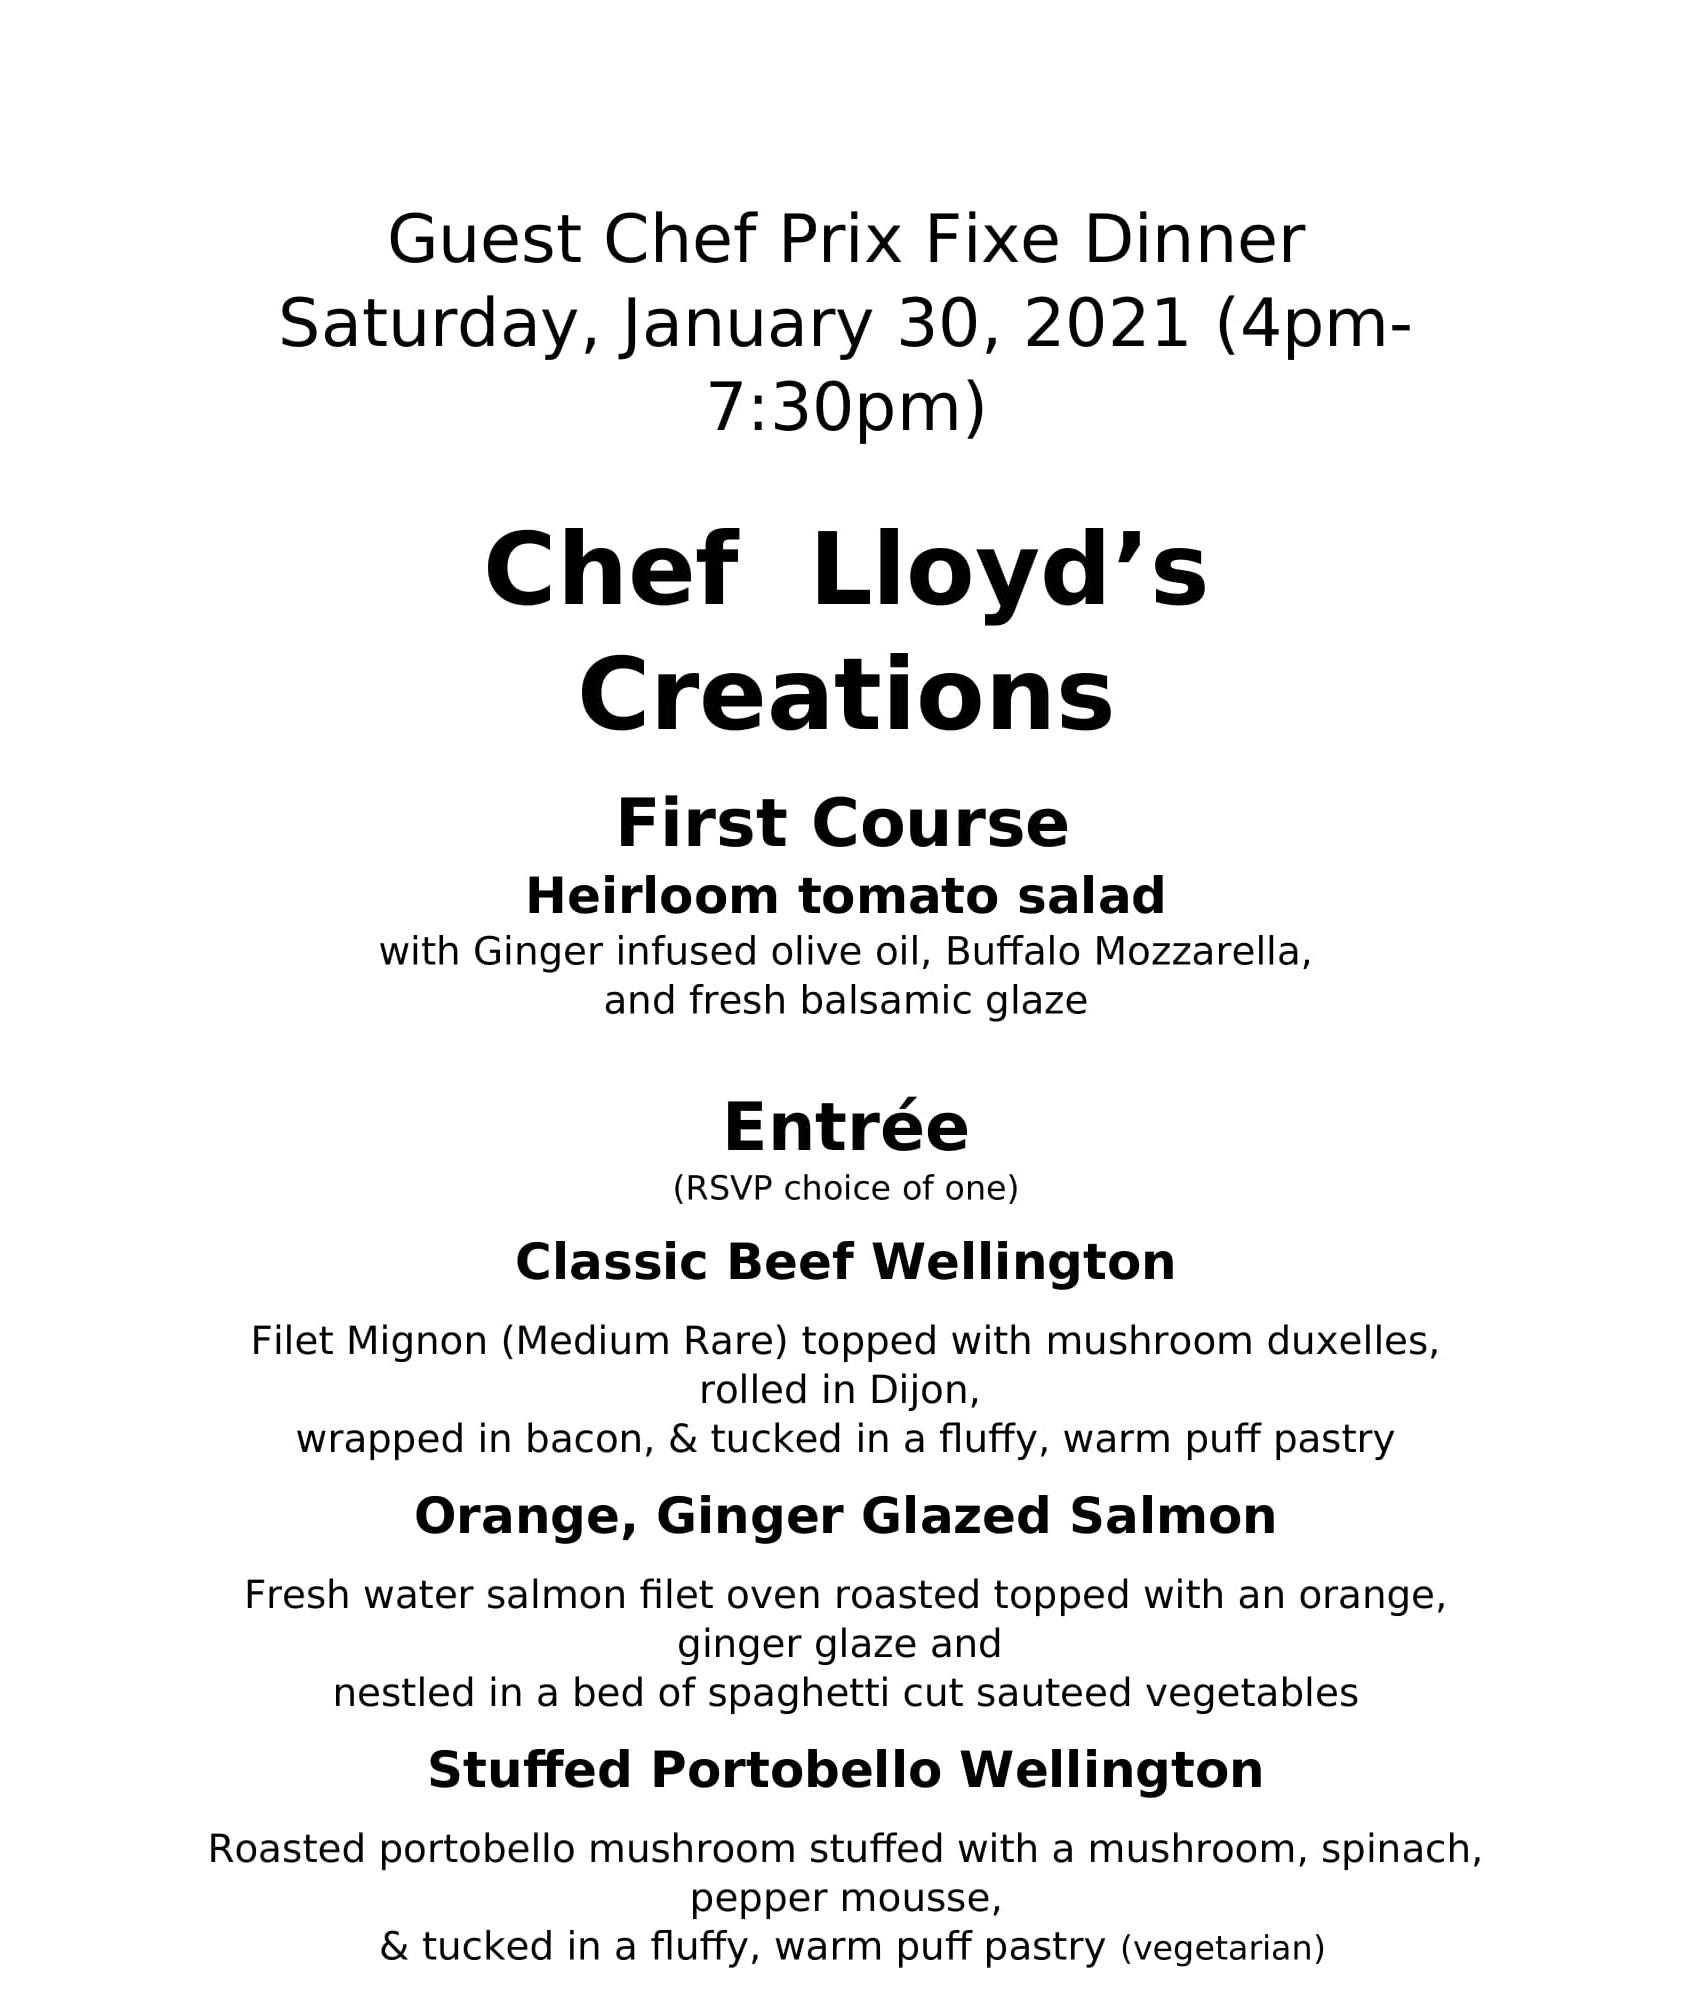 guest chef prix fixe dinner saturday january 30 2021 4pm-7:30pm. Chef Lloyd's creations. First course: heriloom tomato salad with ginger infused olive oil, buffalo mozzarella, and fresh balsamic glaze. Entree (RSVP choice of one) classic beef wellington: filet mingon (medium rare) toppped with mushroom duxelies rolled in dijon wrapped in bacon and tucked in a fluffy warm puff pastry. Orange Giner glazed salmon: fresh water salmon filet oven raosted topped with an orange ginger glaze and nestled in a bed of spaghetti cut sauteed vegetables. Stuffed Portobello wellington: roasted portobello mushroom stuffed with a mushroom, spinach, pepper mousse, and tucked in a fluffy warm puff pastry (vegetarian)